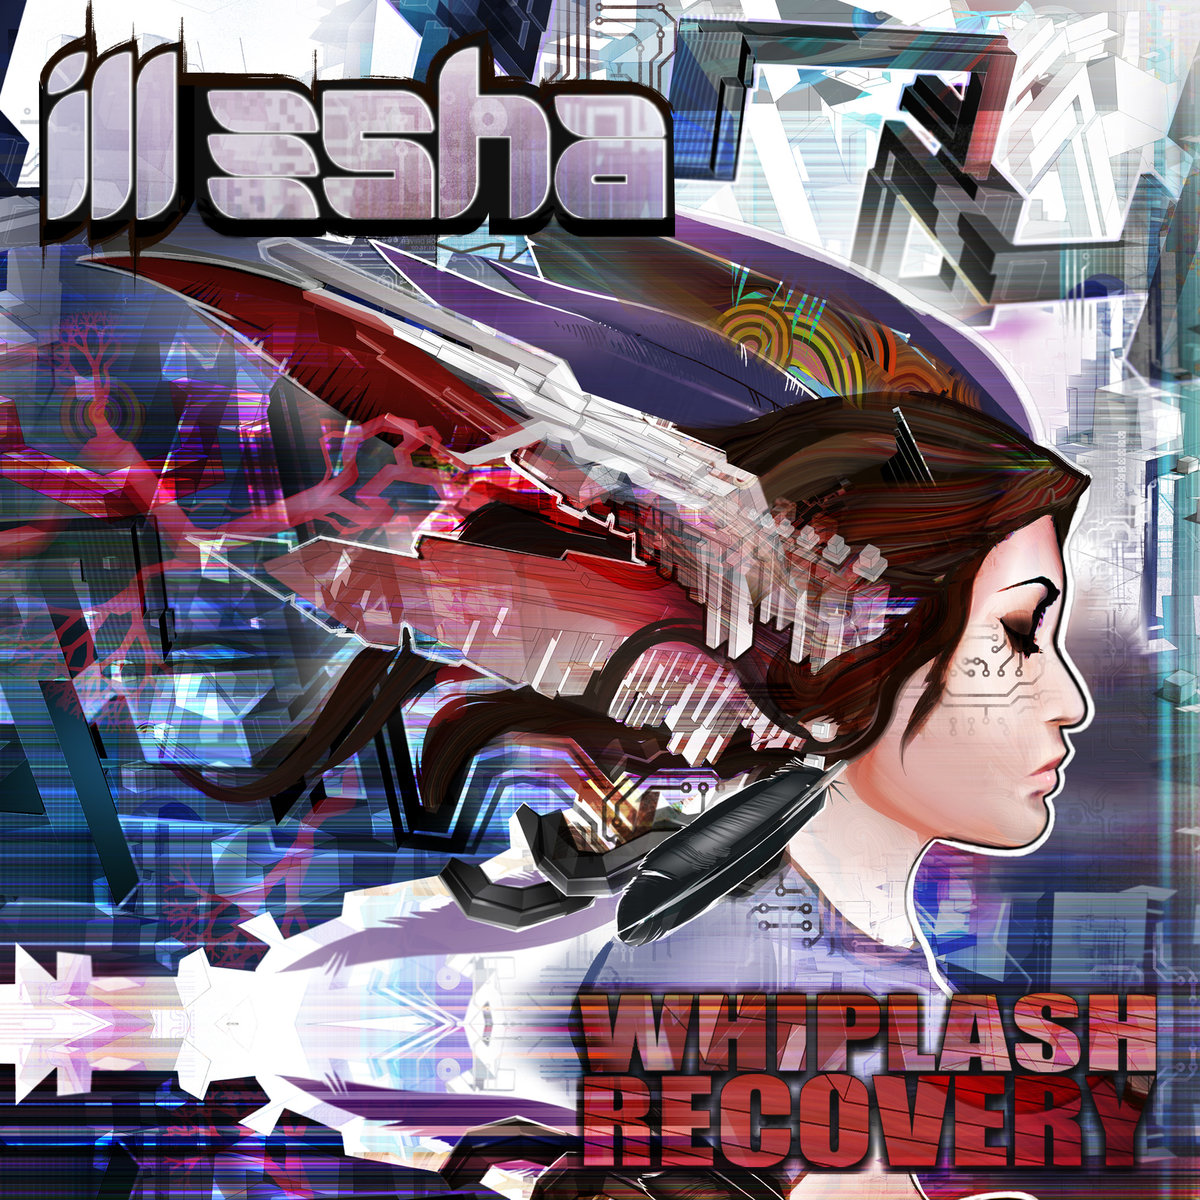 ill-esha - Eternal Houseguest @ 'Whiplash Recovery' album (california, denver)